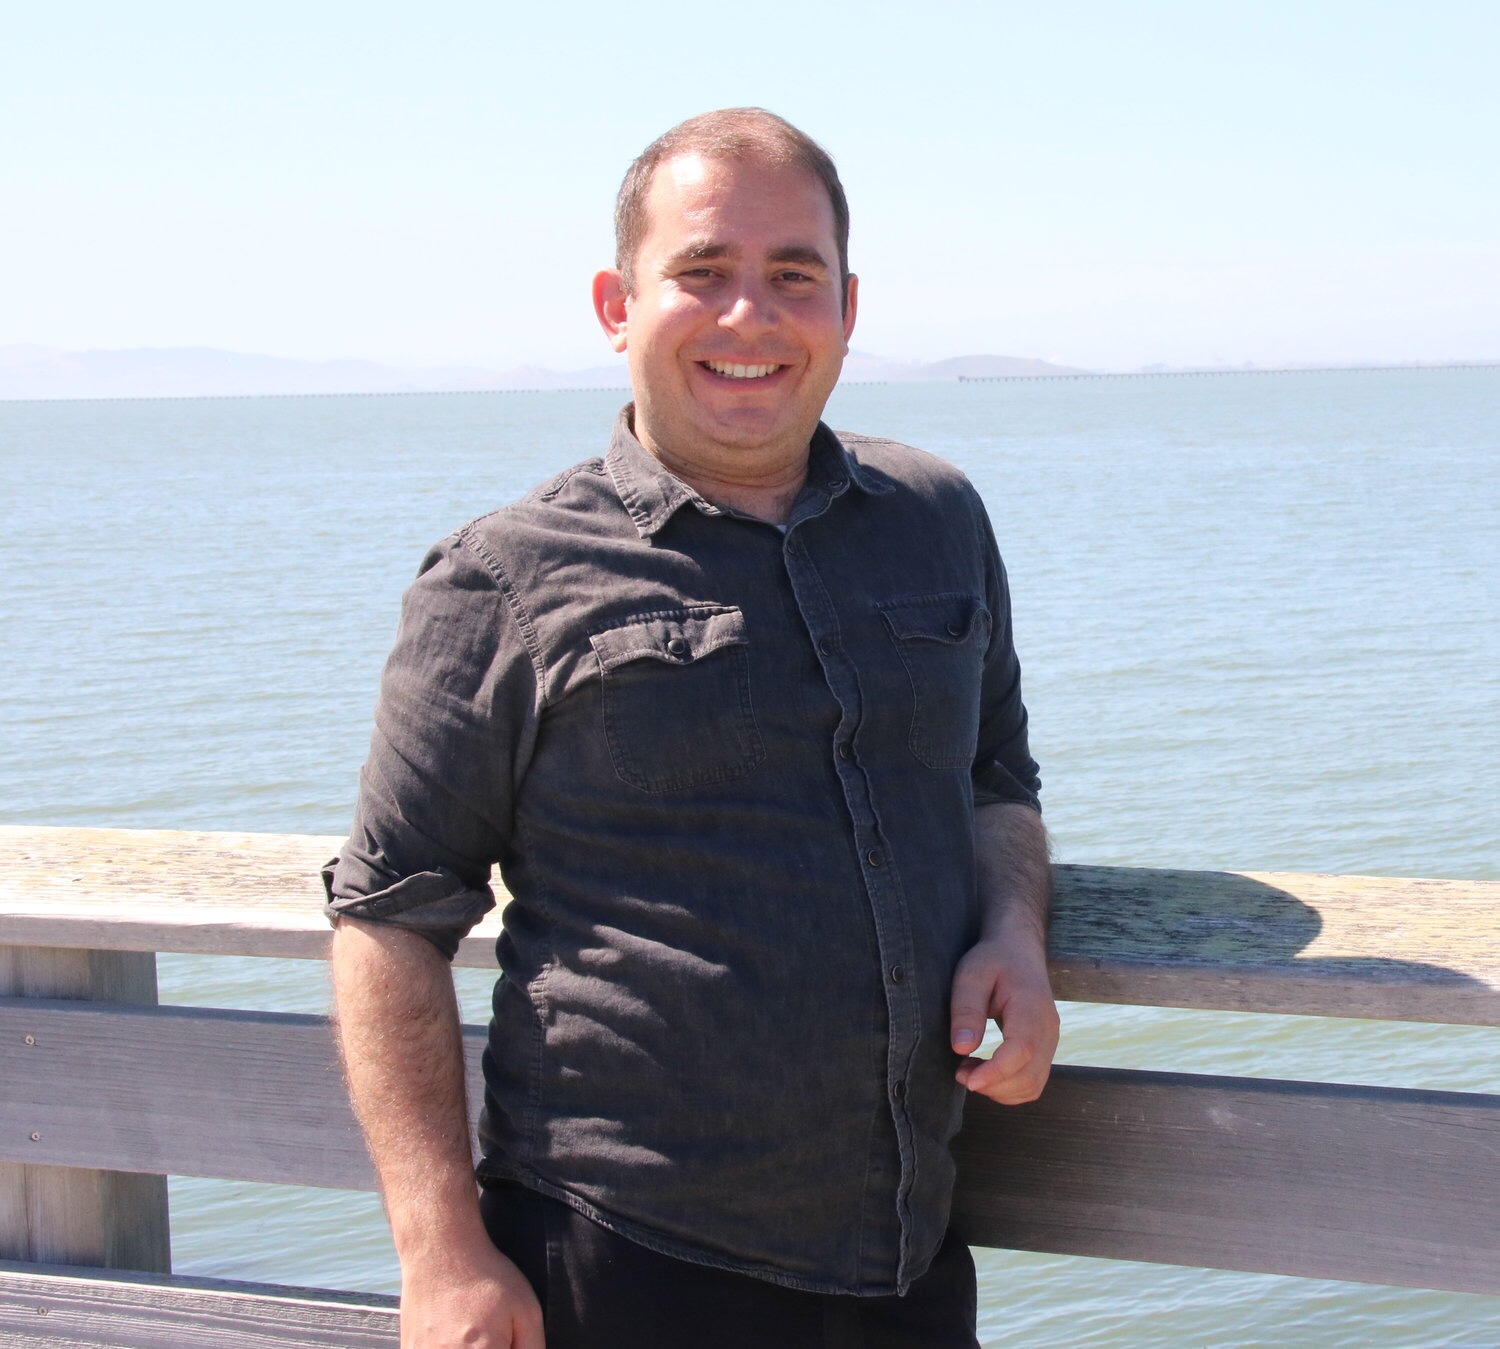 Eric Young, AMFT - East Bay Queer LGBTQ+ Psychotherapy for Transgender, Non-binary, Queer Individuals and CouplesMODALITIES-Emotionally focused therapy-Gestalt-Hakomi-LGBTQ+-Kink/BDSM -Couples-Mindfulness